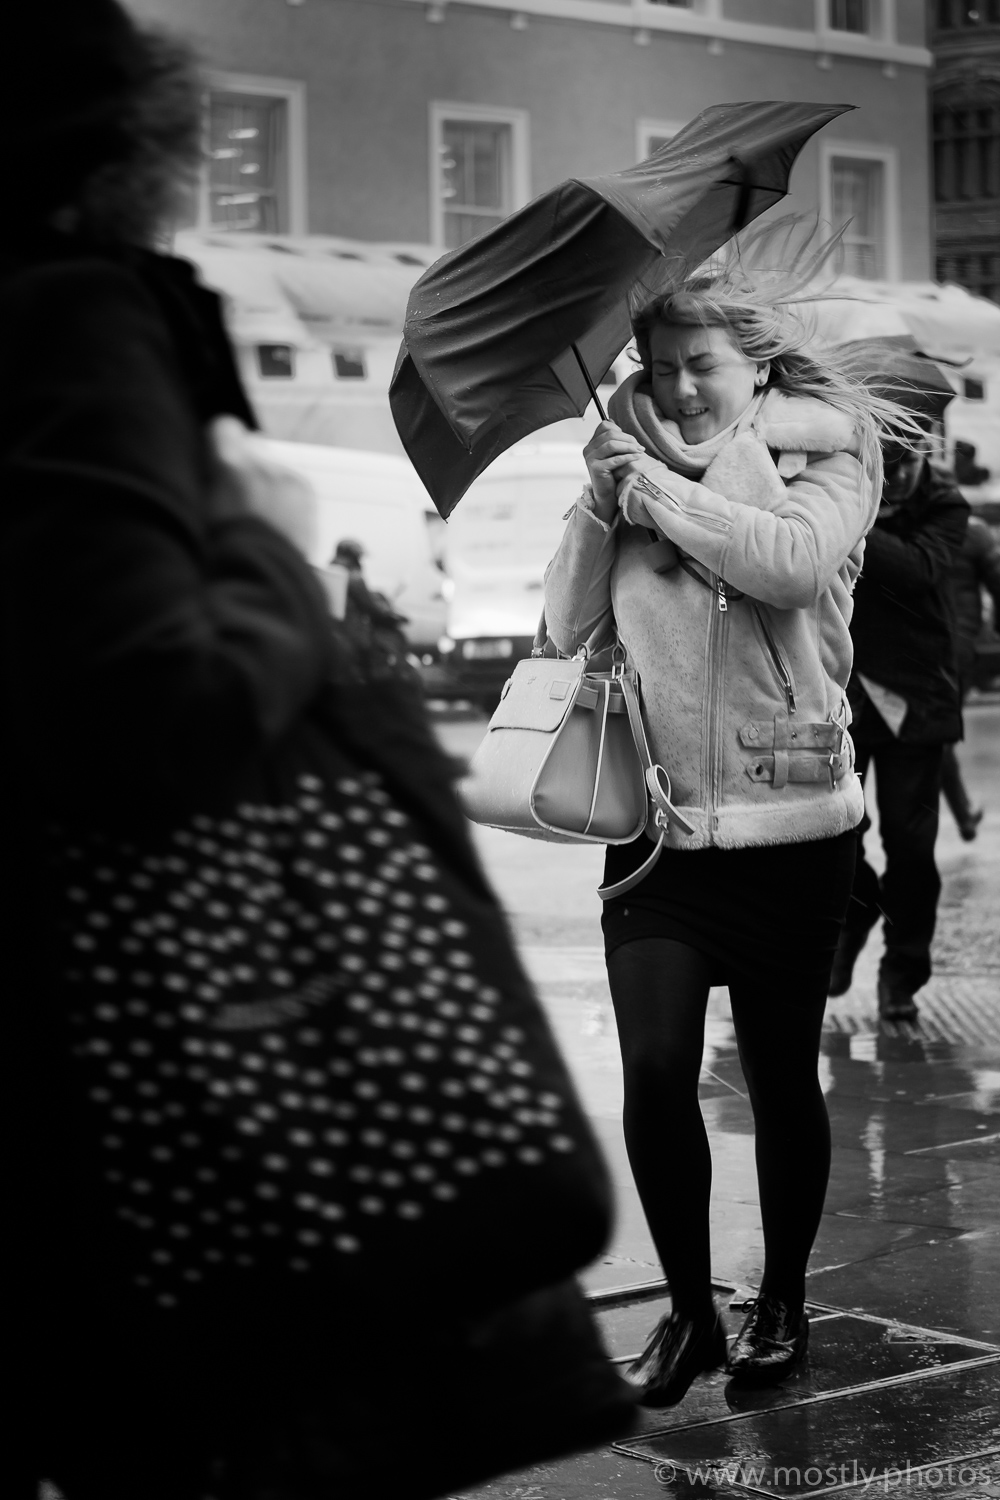 Fuji X-T2 and 35mm f2 - Wet and Windy London Commuters